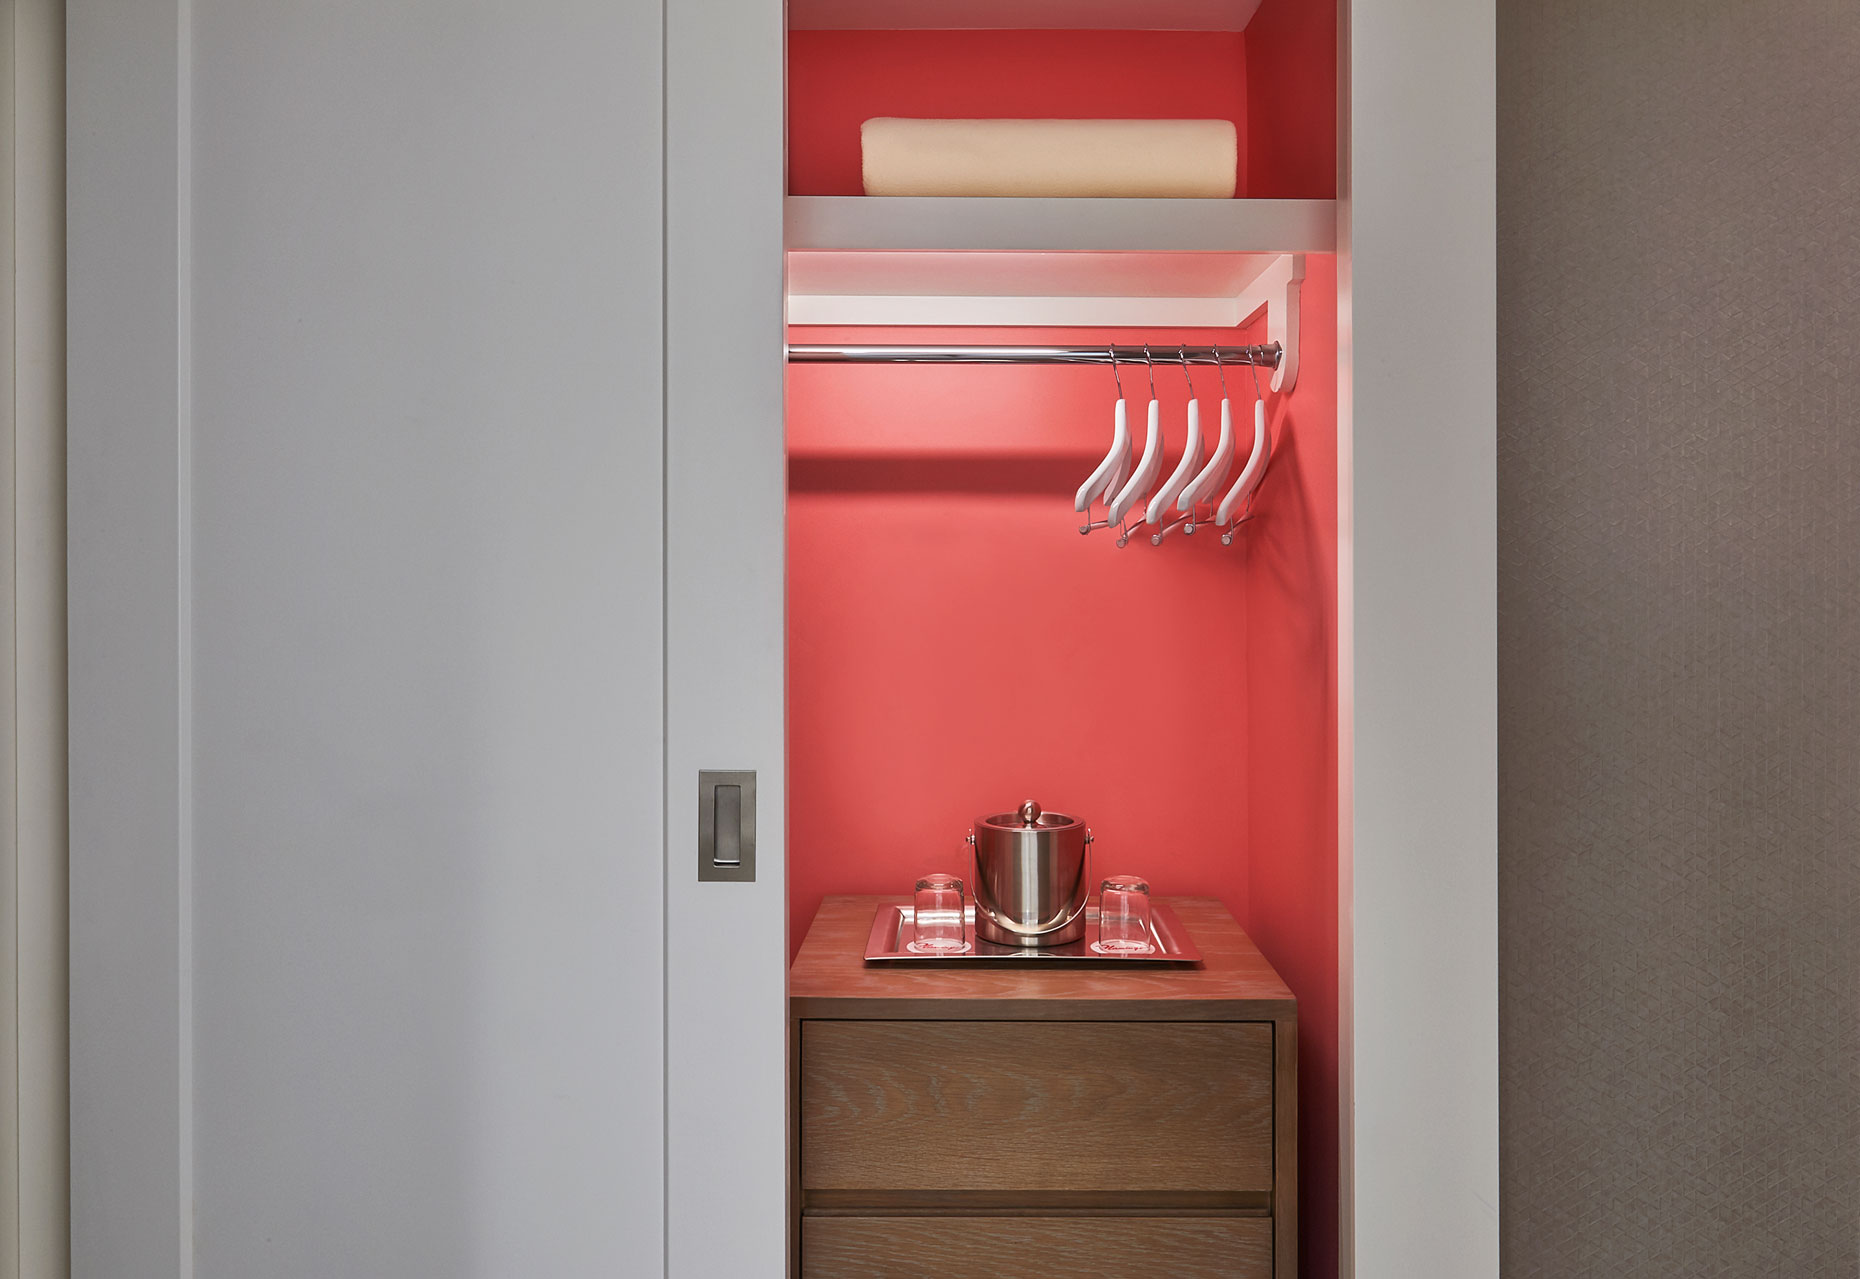 THE-FLAMINGO-ROOM-27164-Closet